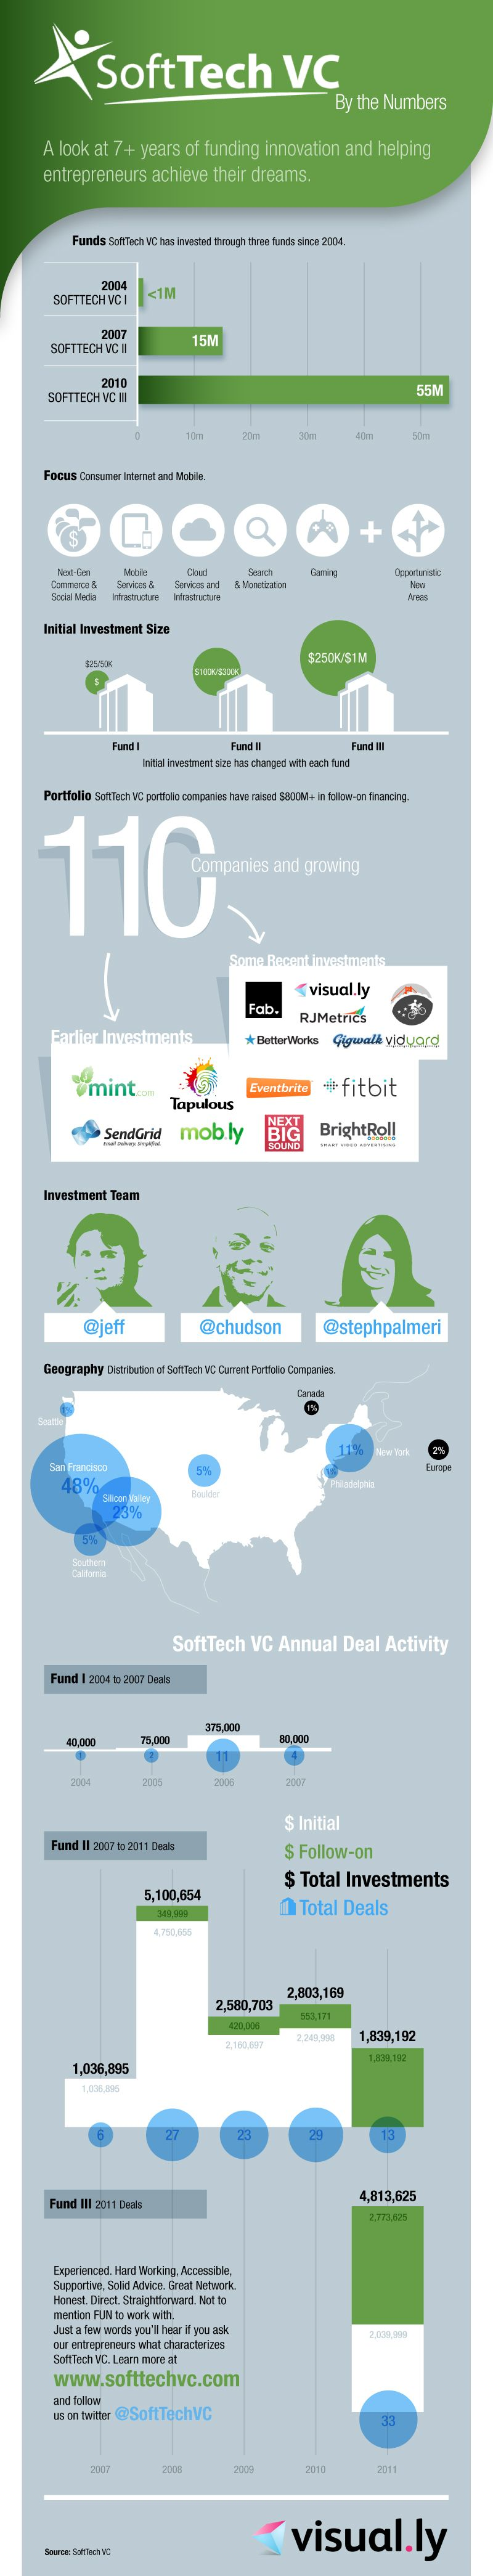 Infographics: The SoftTech VC numbers